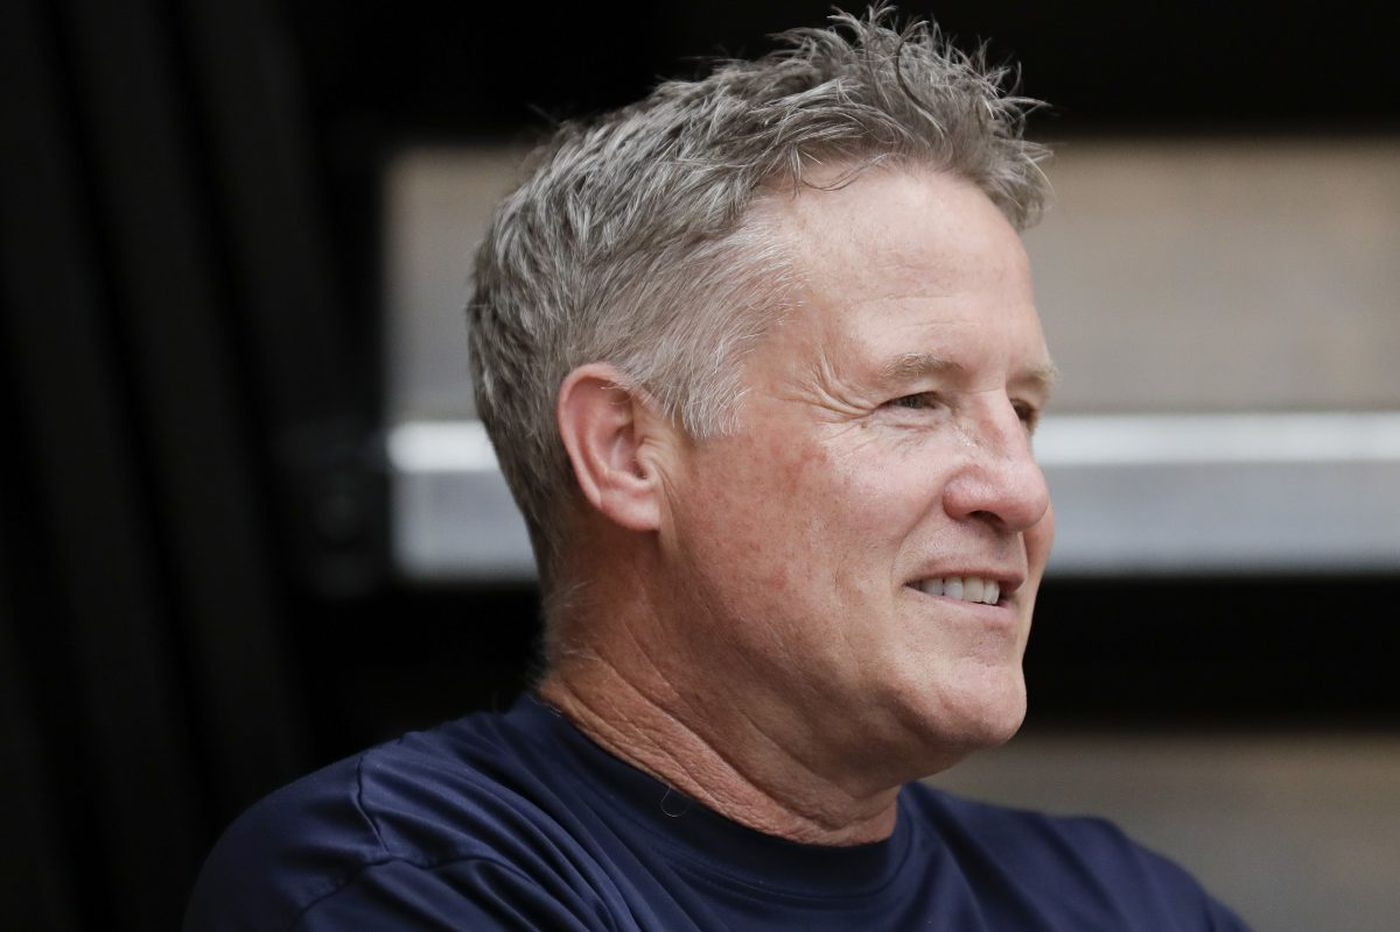 In Celtics country, Sixers coach Brett Brown's dad touts son's resilience during NBA playoffs